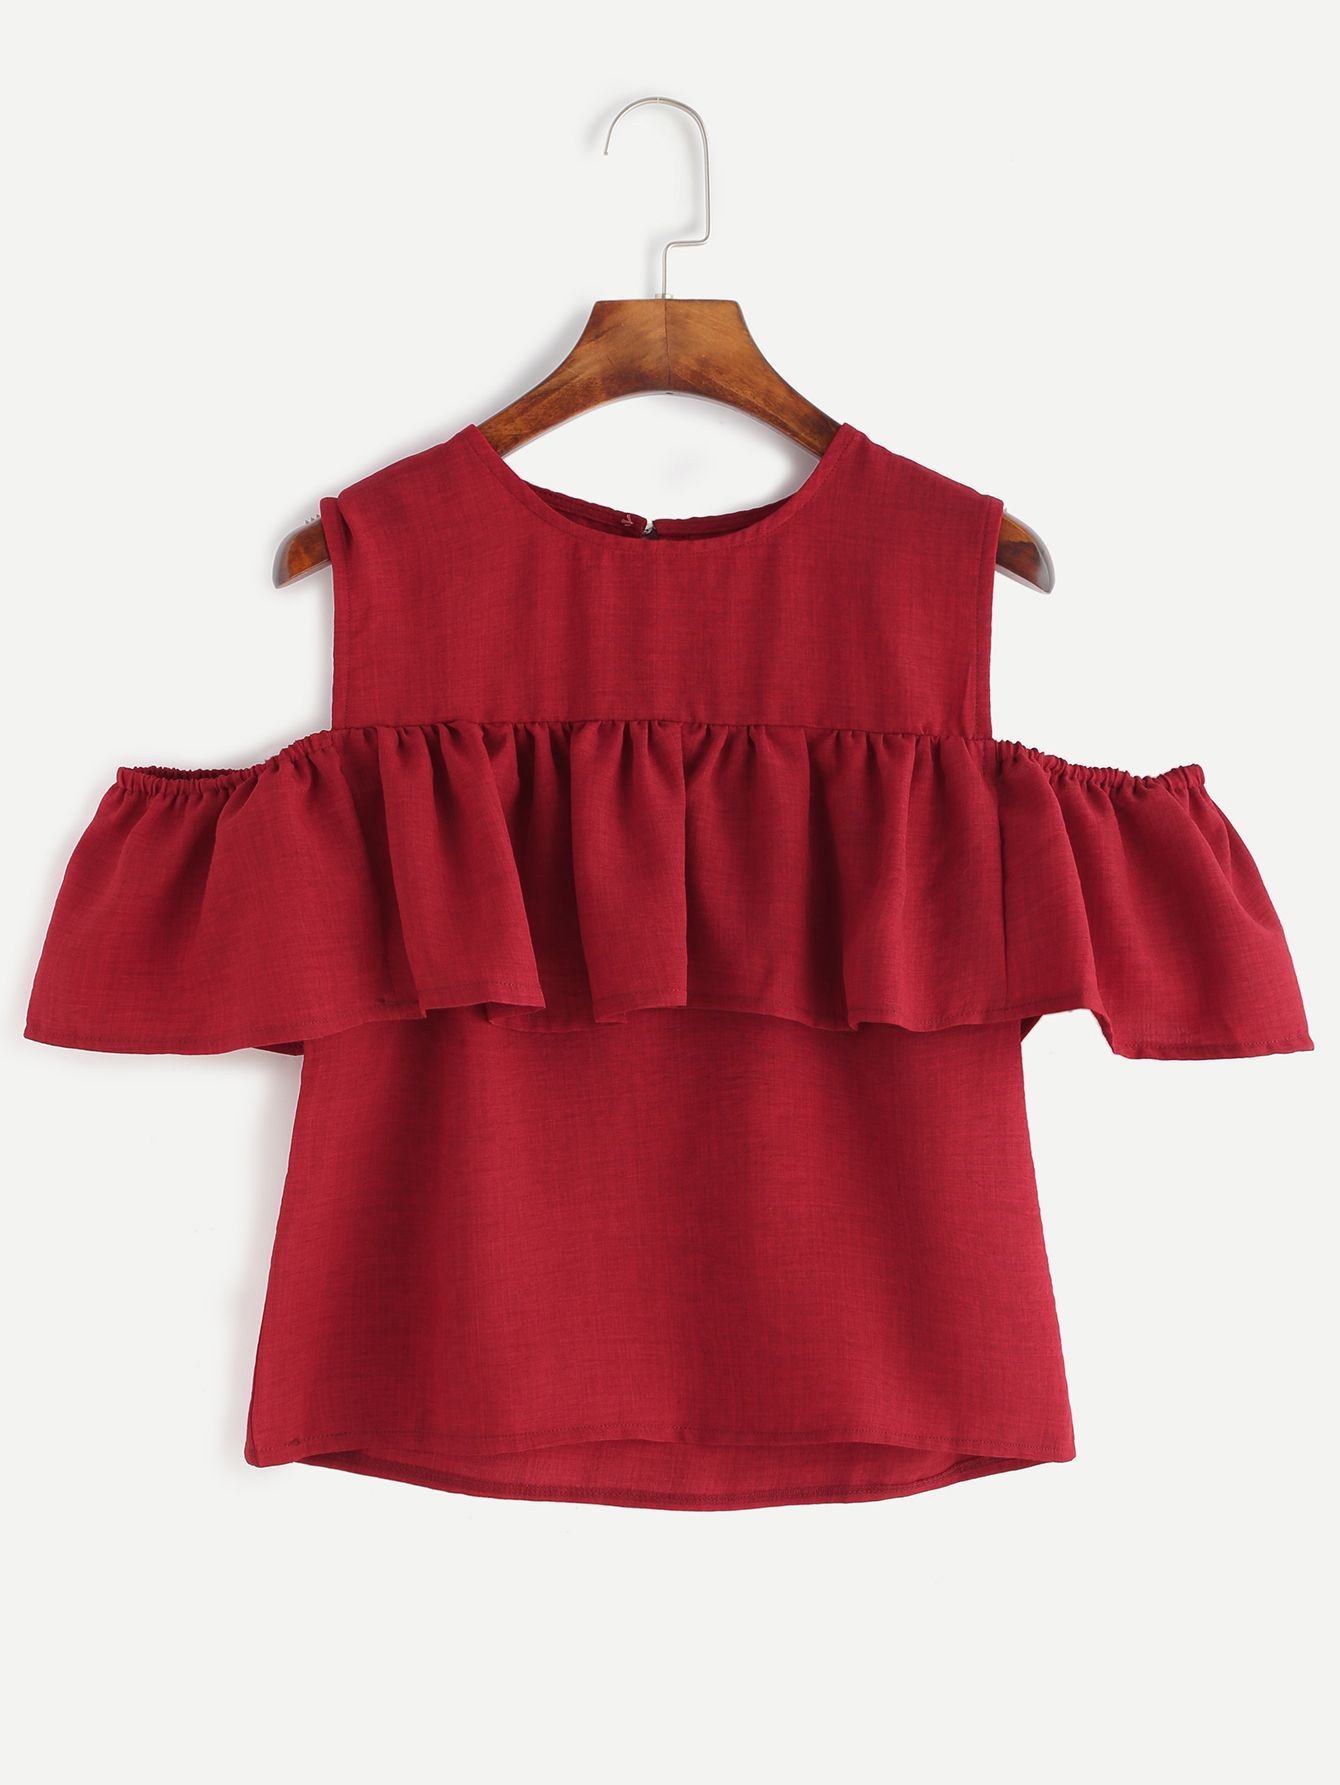 d26eb0c4573be5 Shop Burgundy Open Shoulder Ruffle Top online. SheIn offers Burgundy Open  Shoulder Ruffle Top   more to fit your fashionable needs.